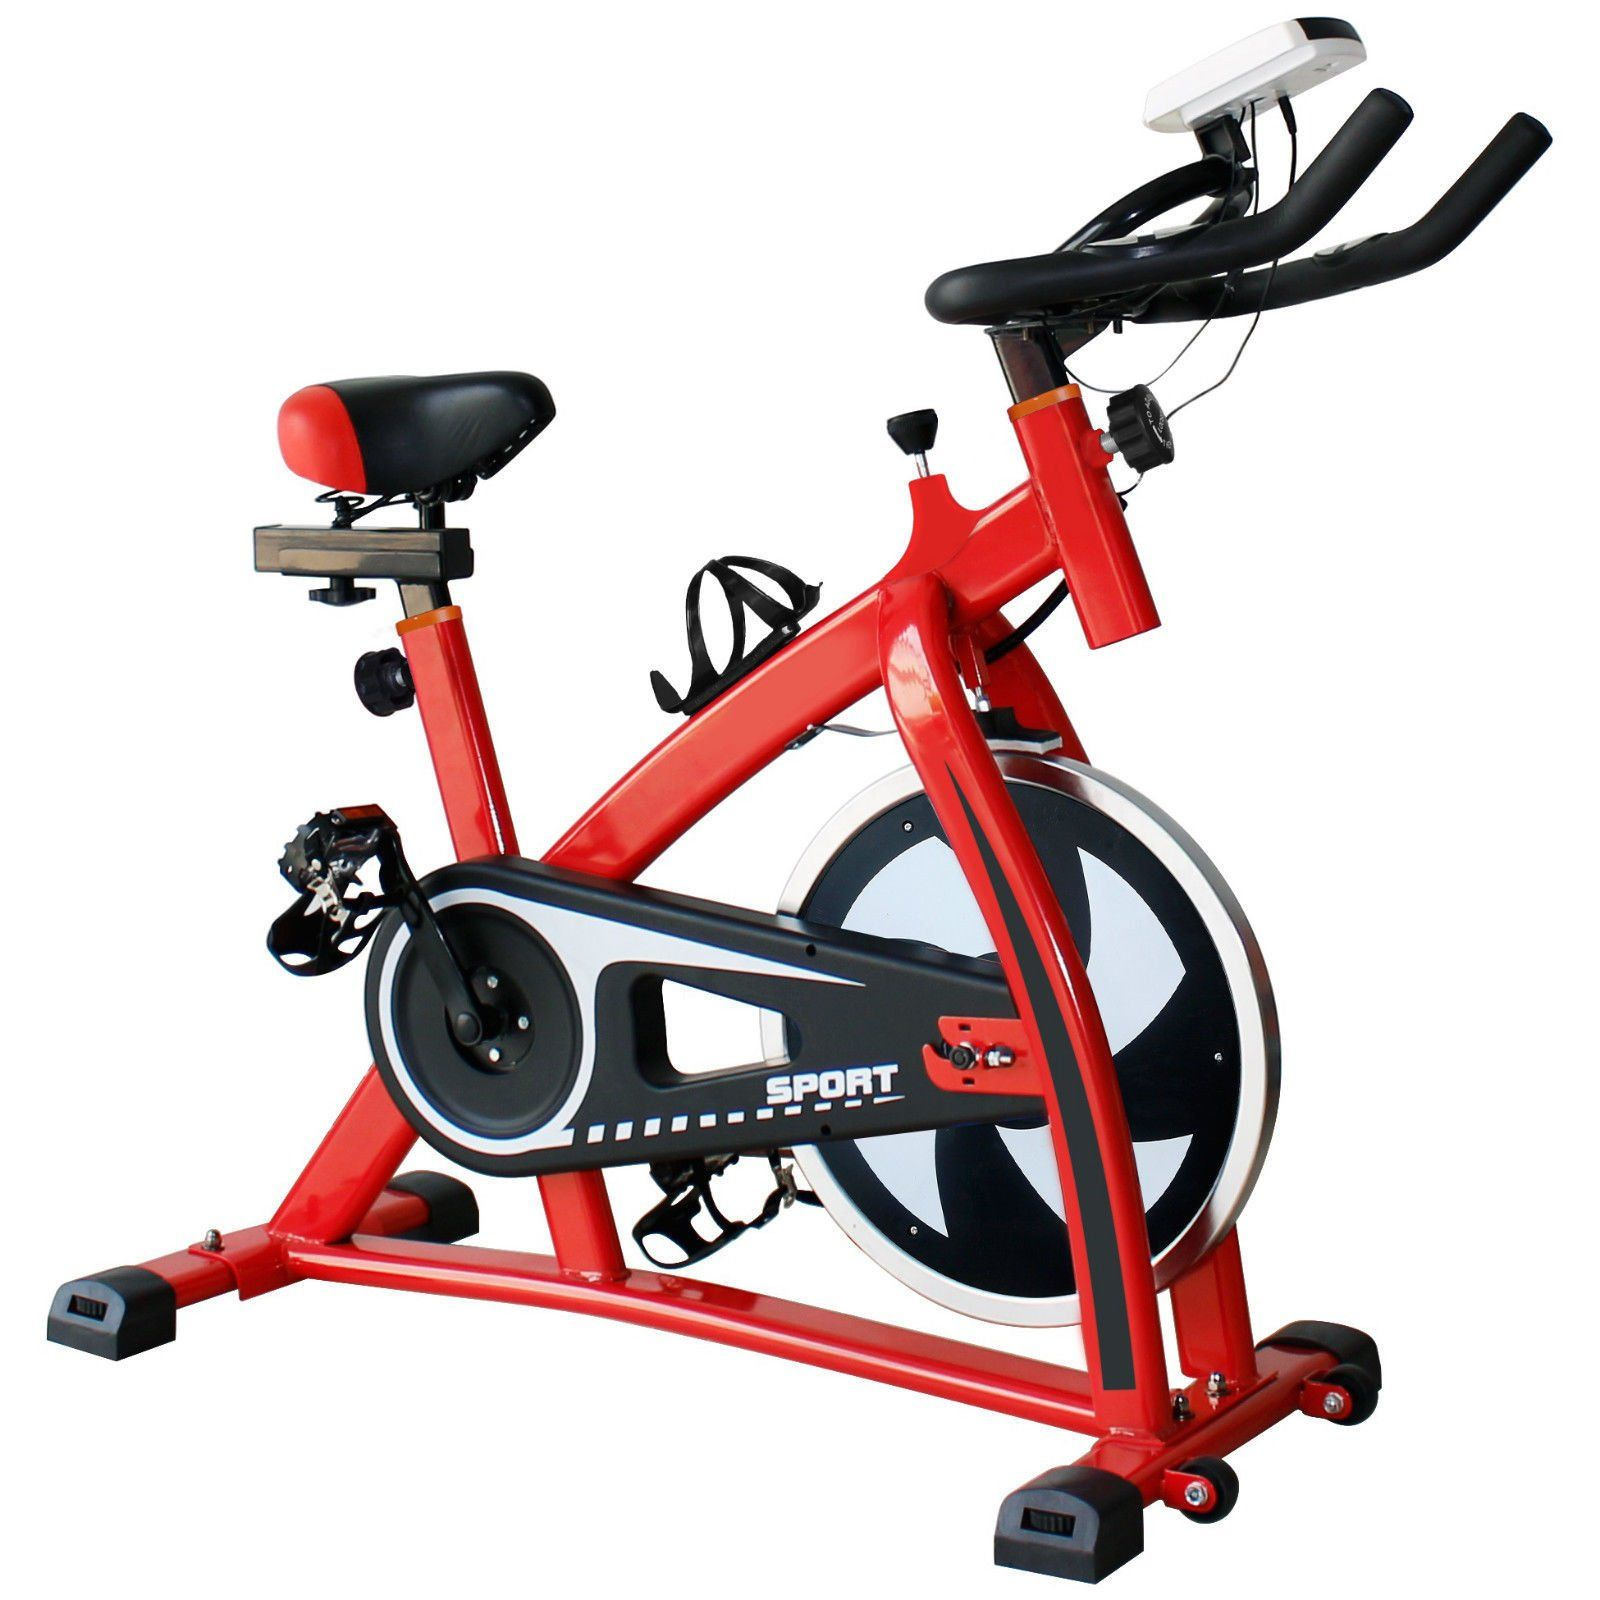 Nikkycozie Red Exercise Bike Gym Bicycle Fitness Cardio Workout